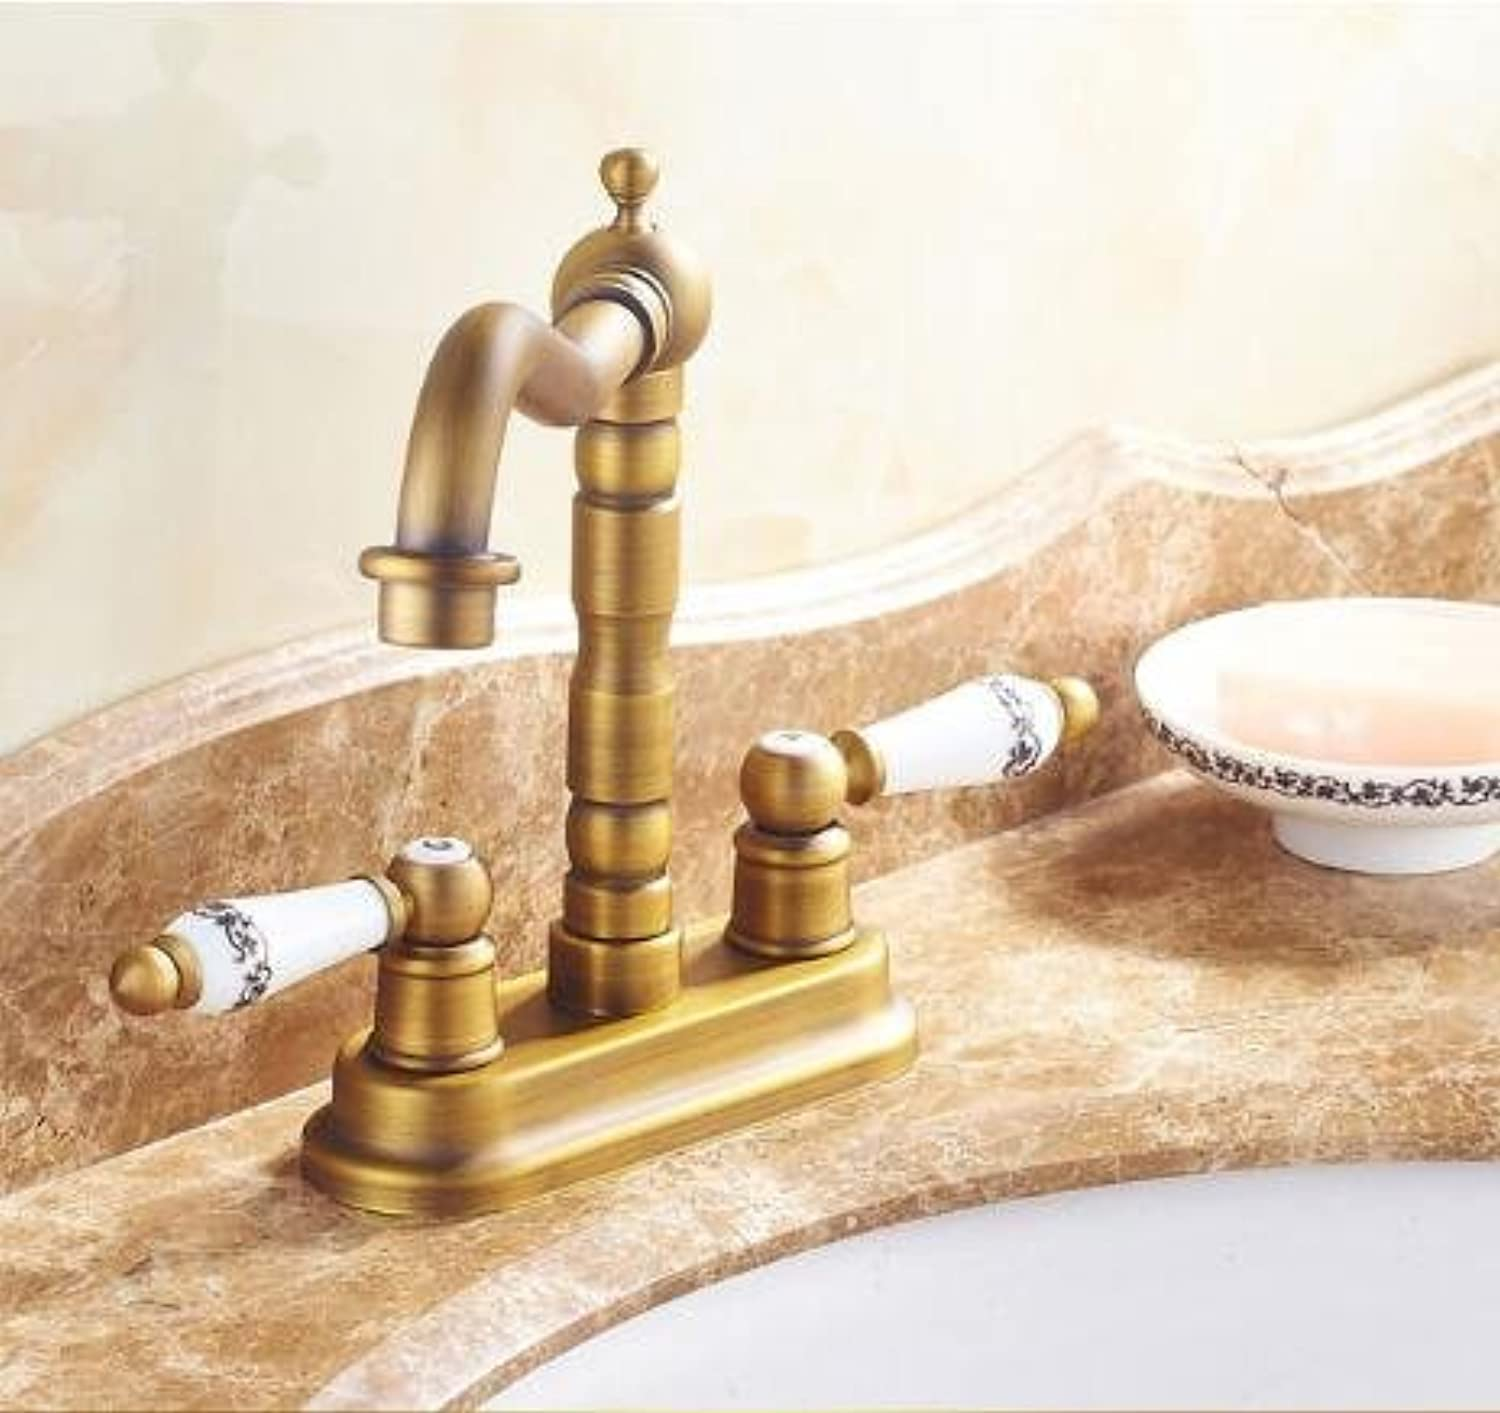 Maifeini ?Antique Bathroom Sinks Faucets Brass Bathroom Faucet Double Handle Double Hole Cold Water Heat Sink Tap Tap Deck Inssizetion